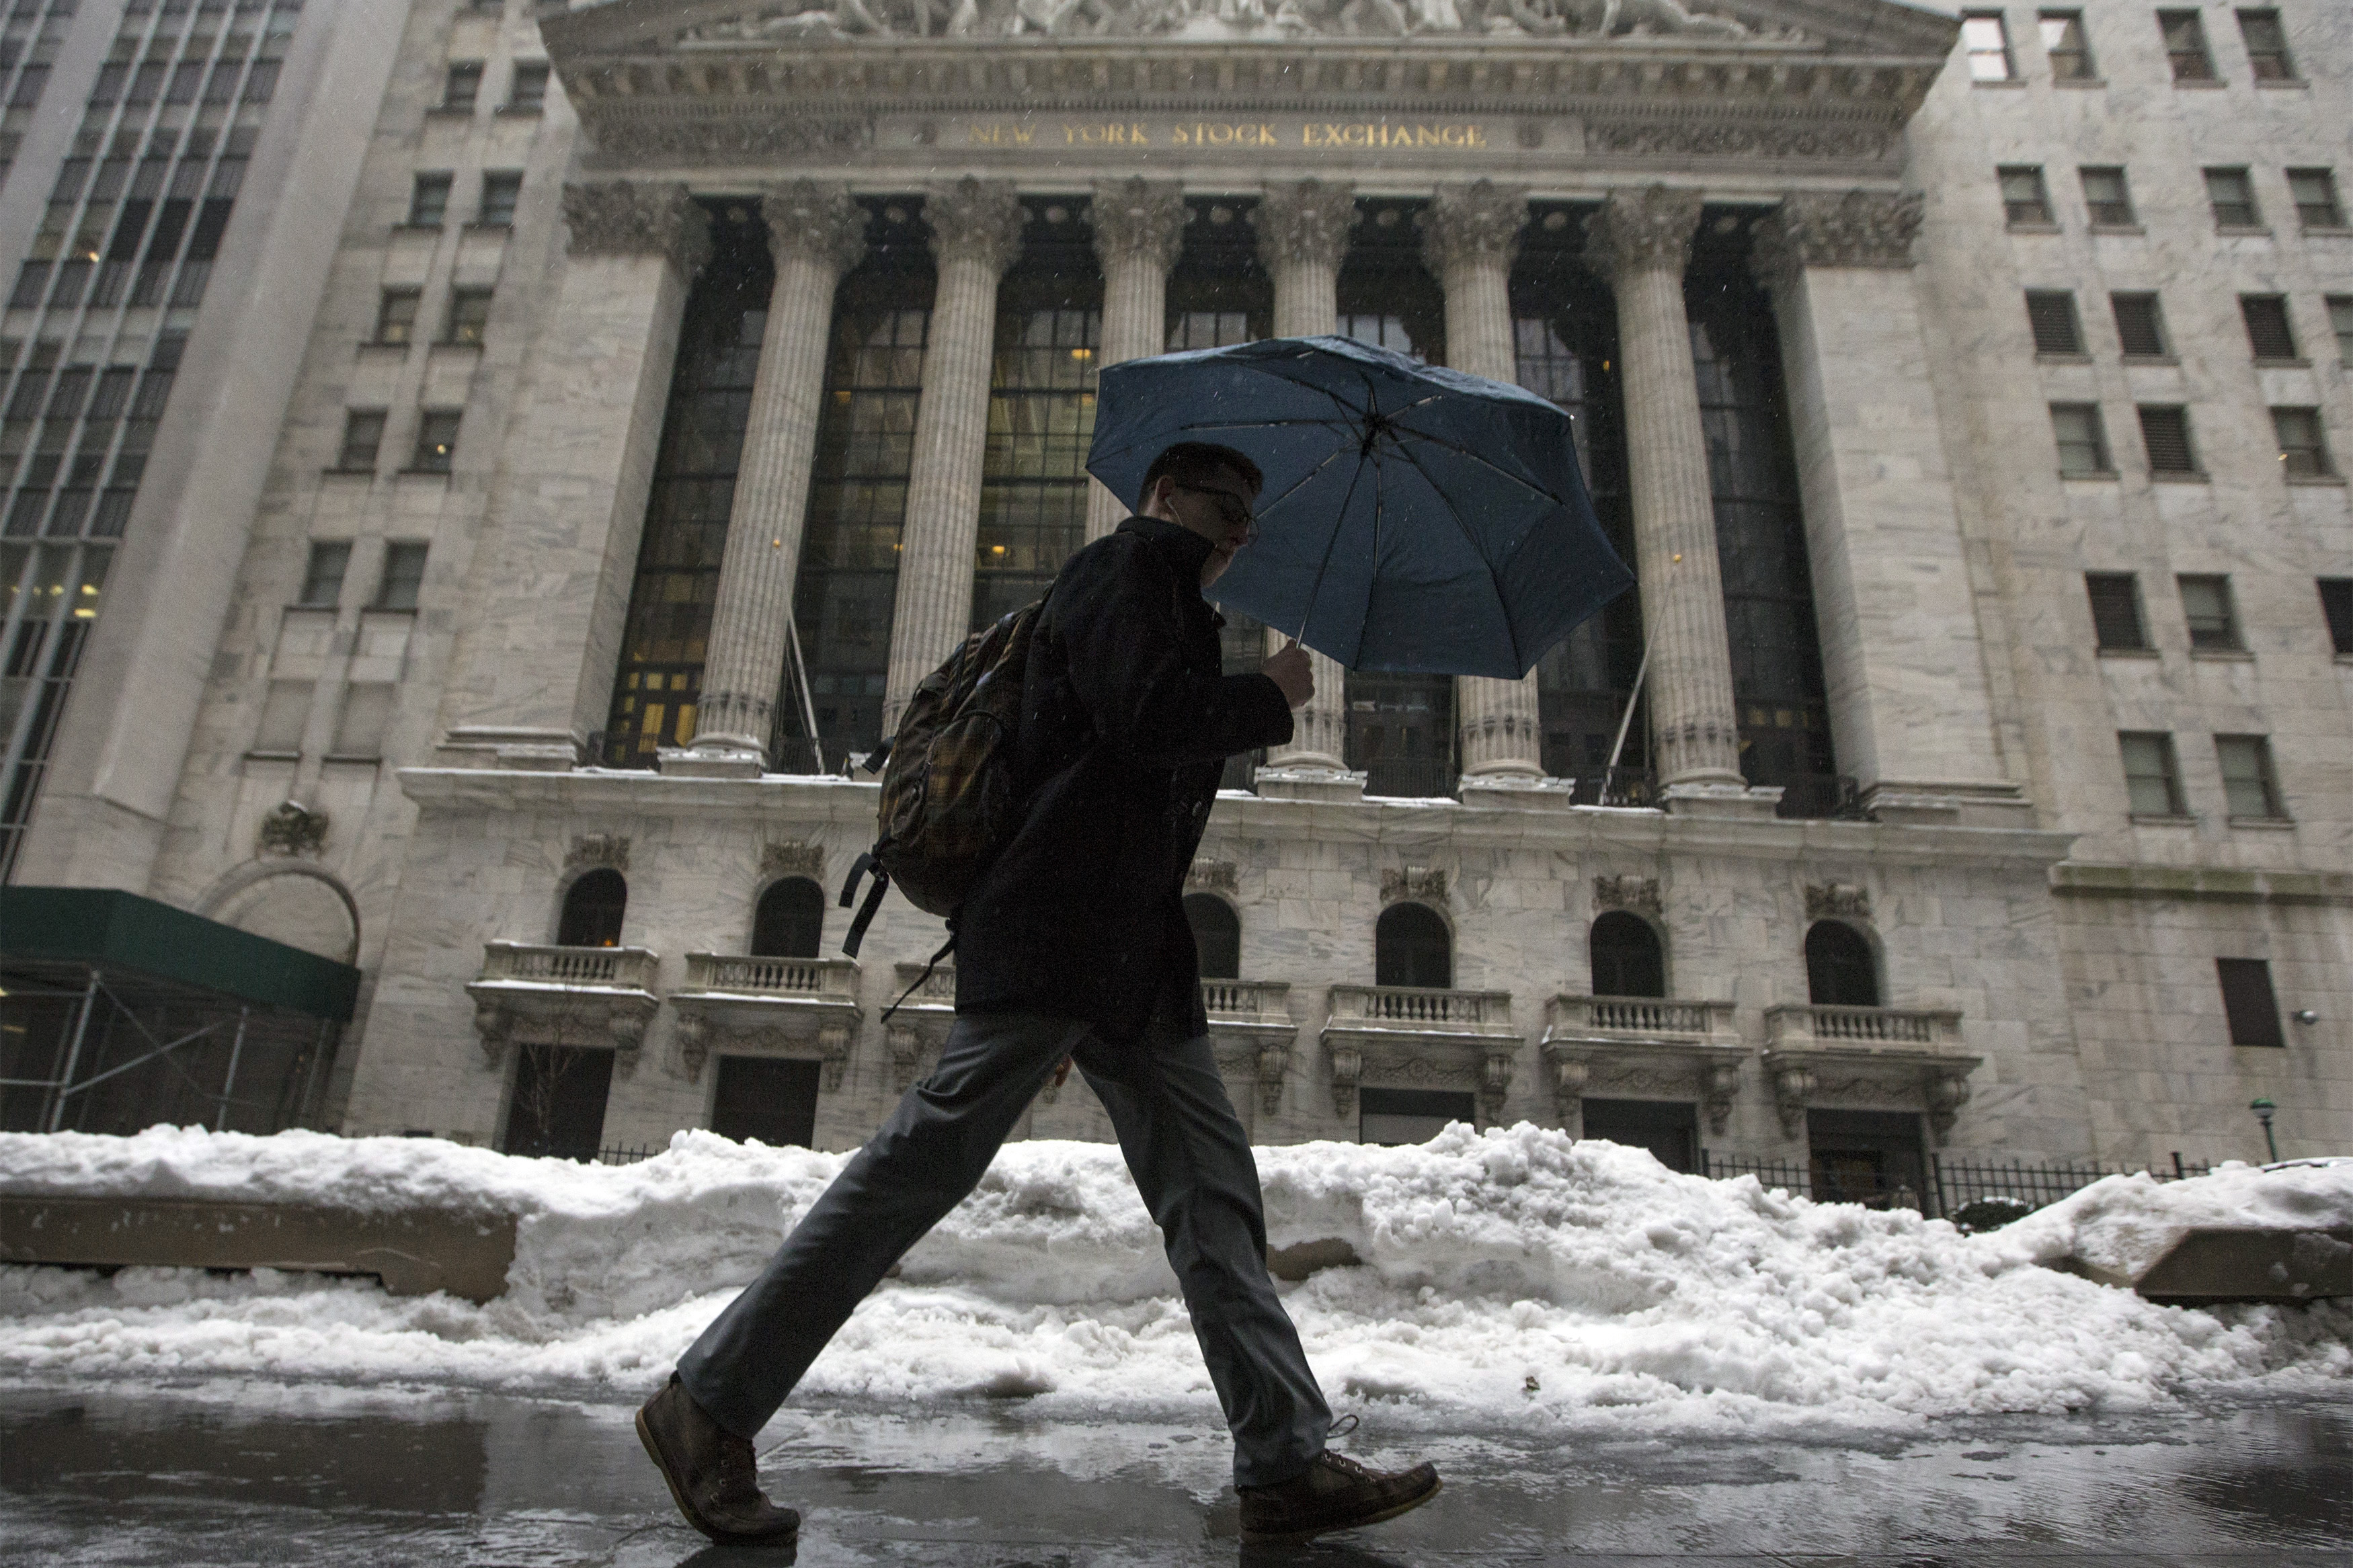 A man walks past the New York Stock Exchange in New York's financial district